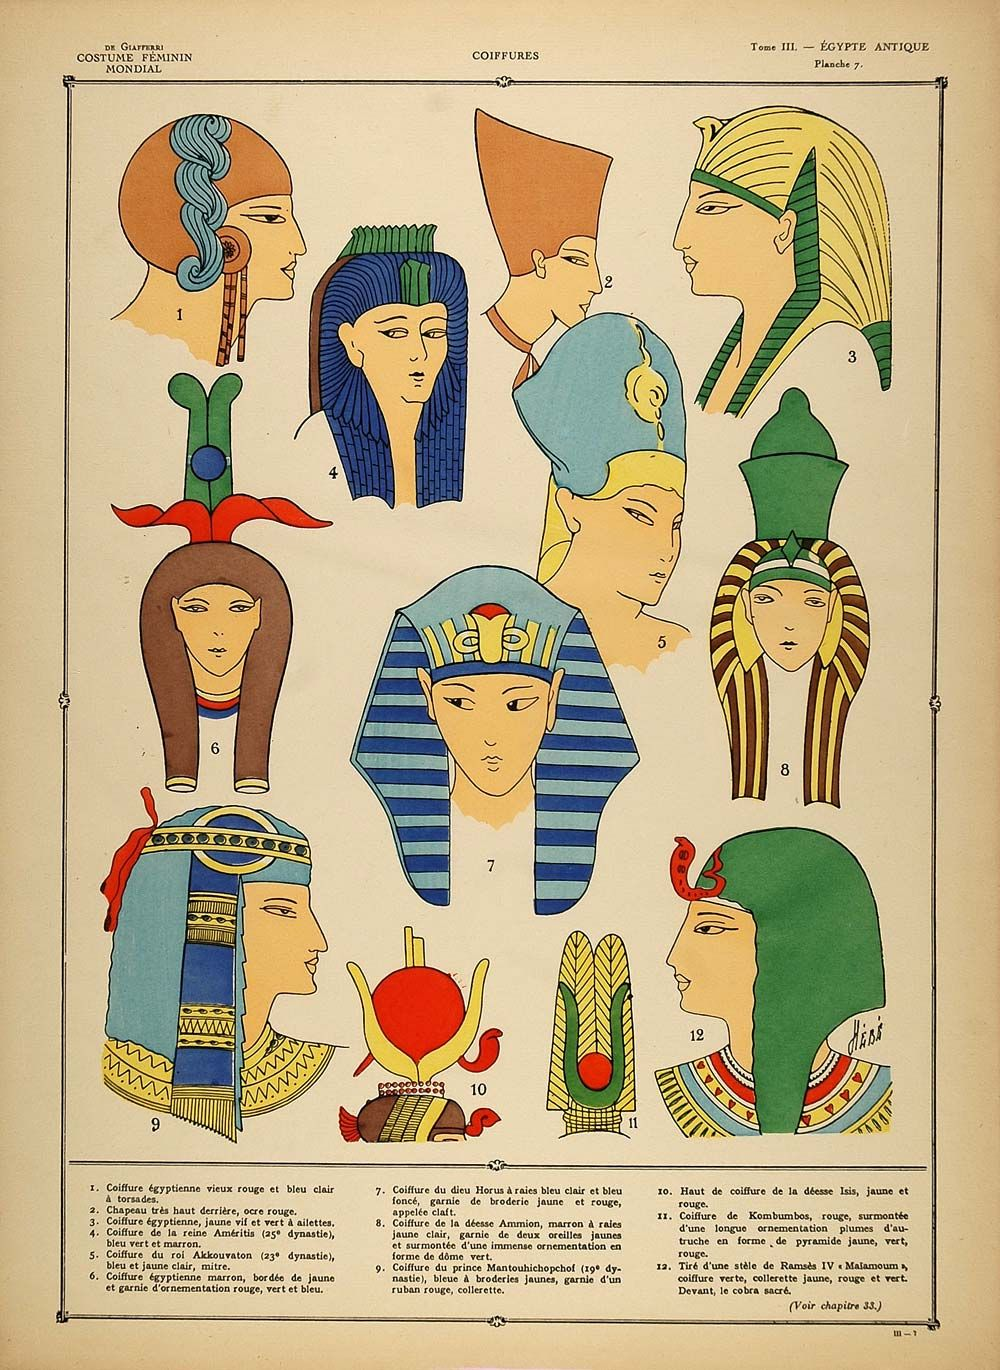 Pin by a mlie on aes ancient egypt pinterest headdress and egyptian fashion egyptian art ancient egypt school projects art reference headdress art lessons social studies carnival robcynllc Images